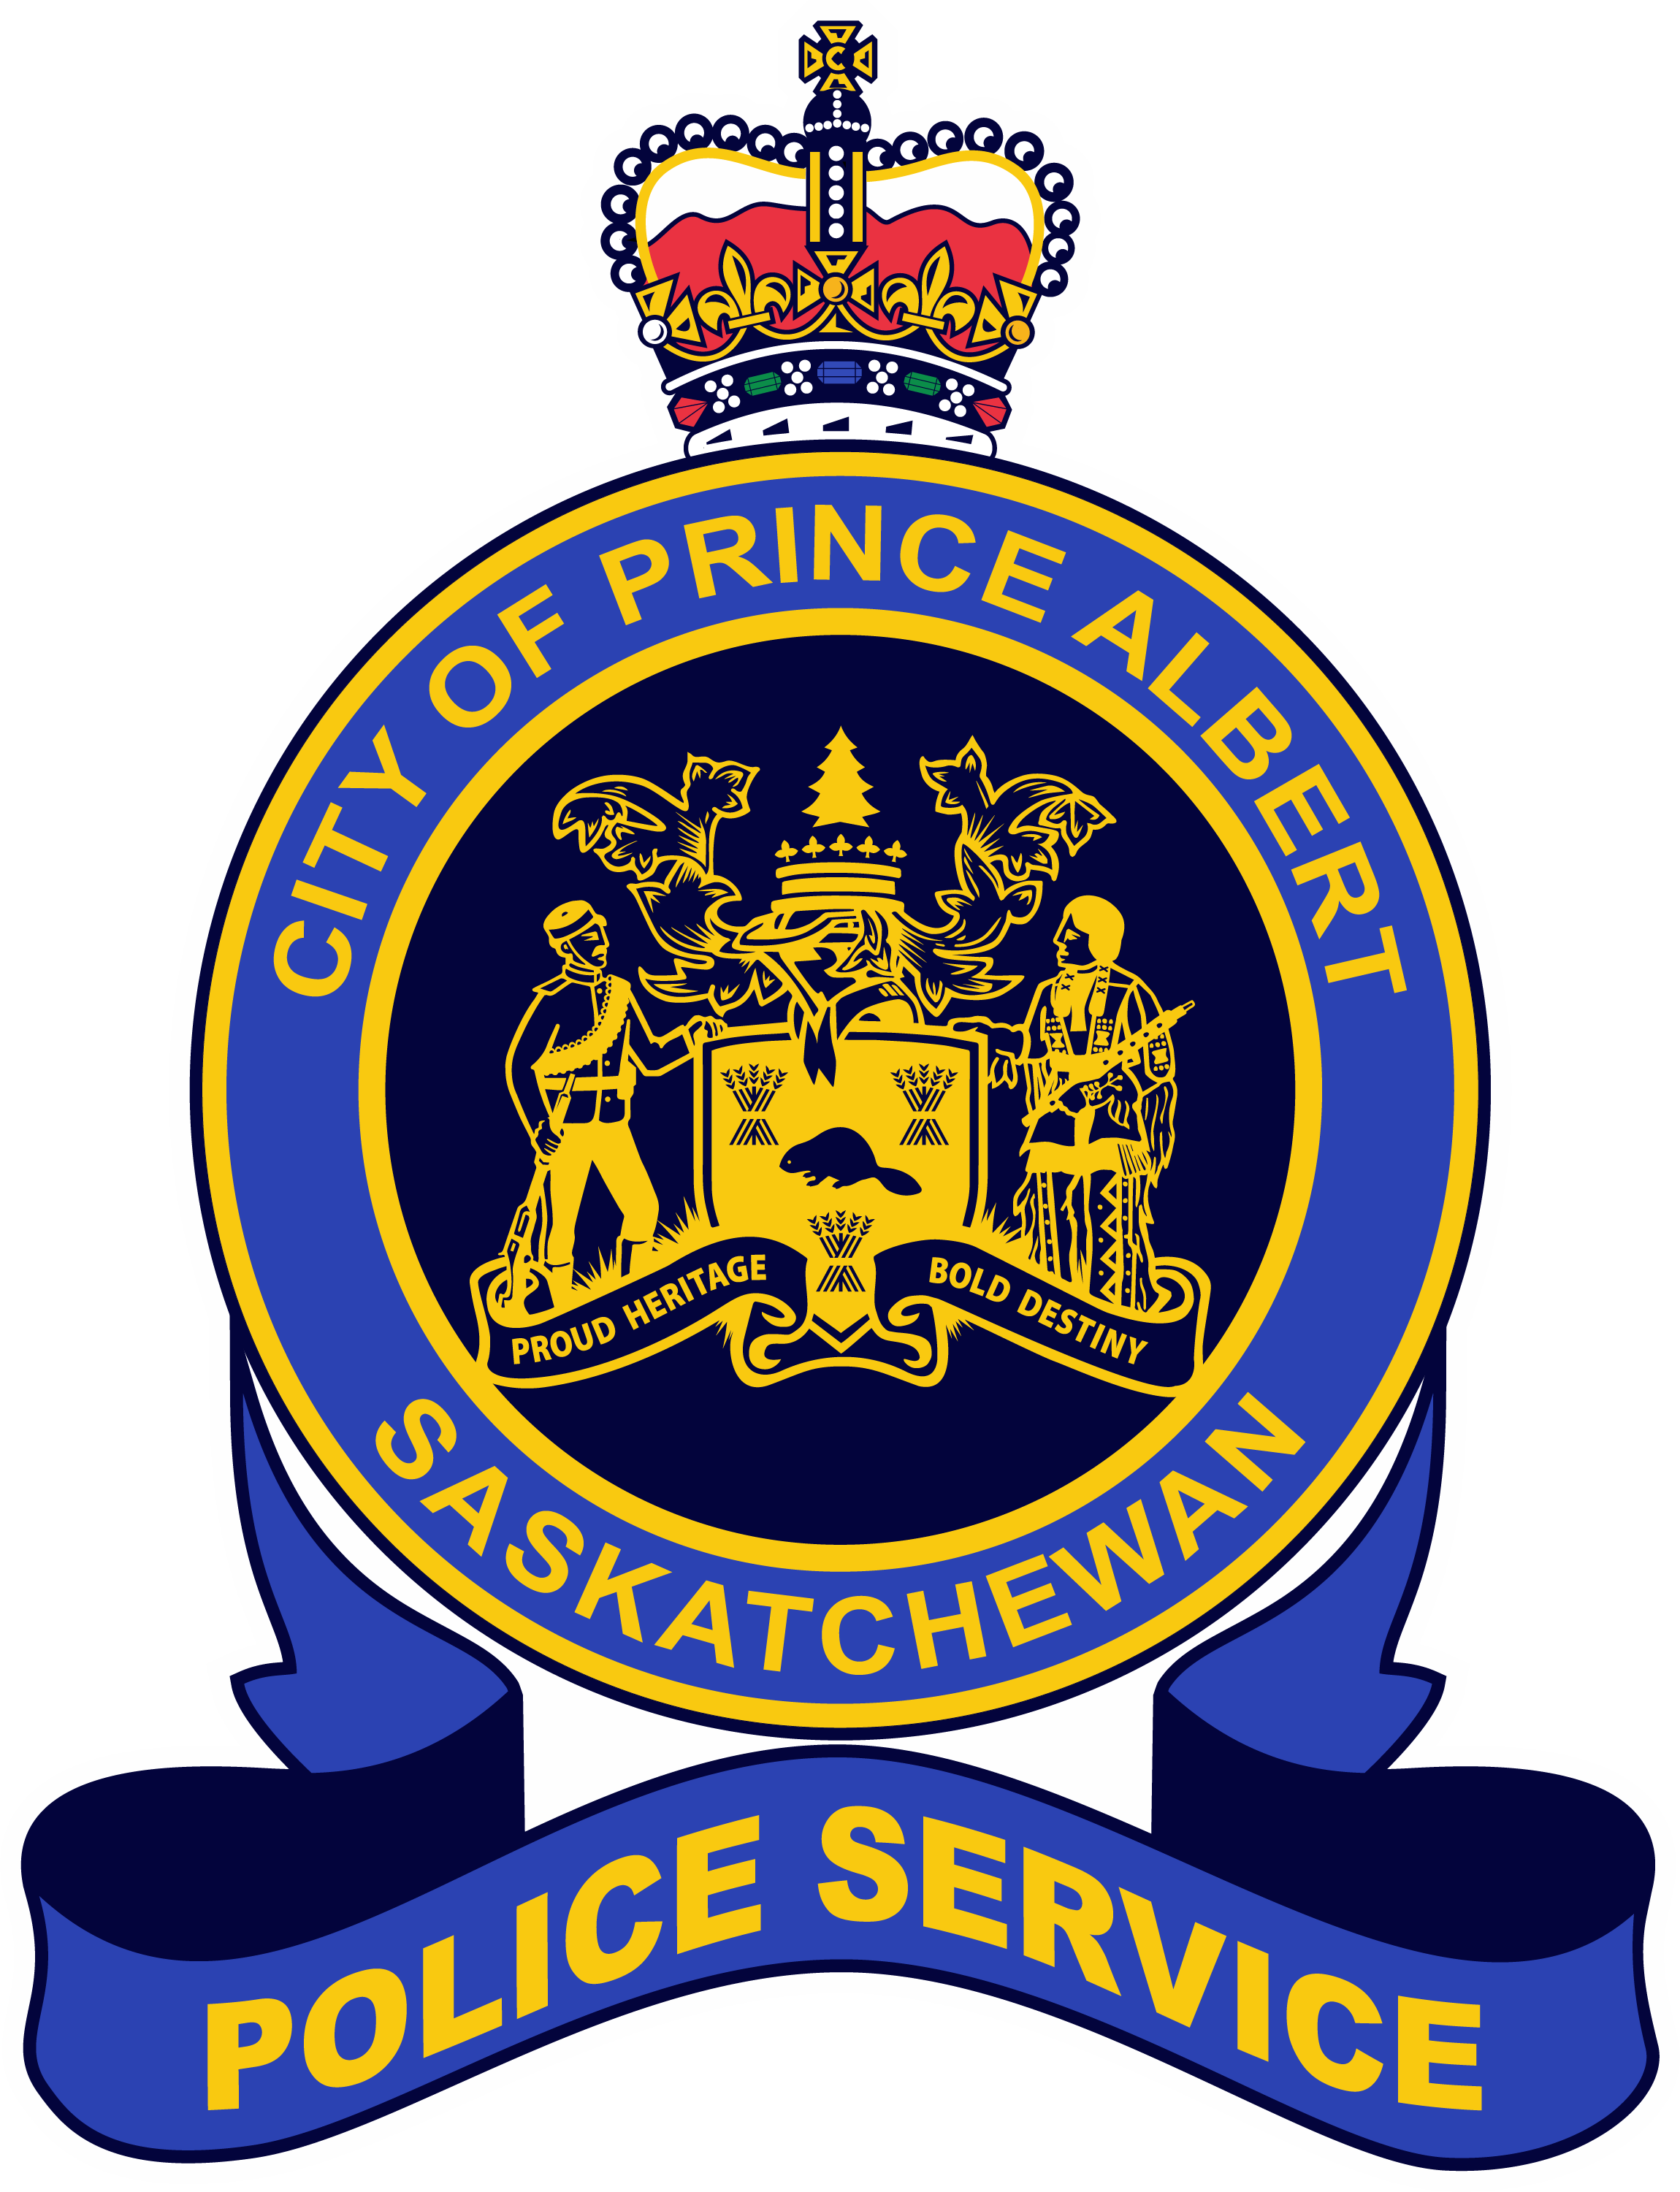 Media Release - Prince Albert Police Service Announces Retirement of Deputy Chief Jason Stonechild